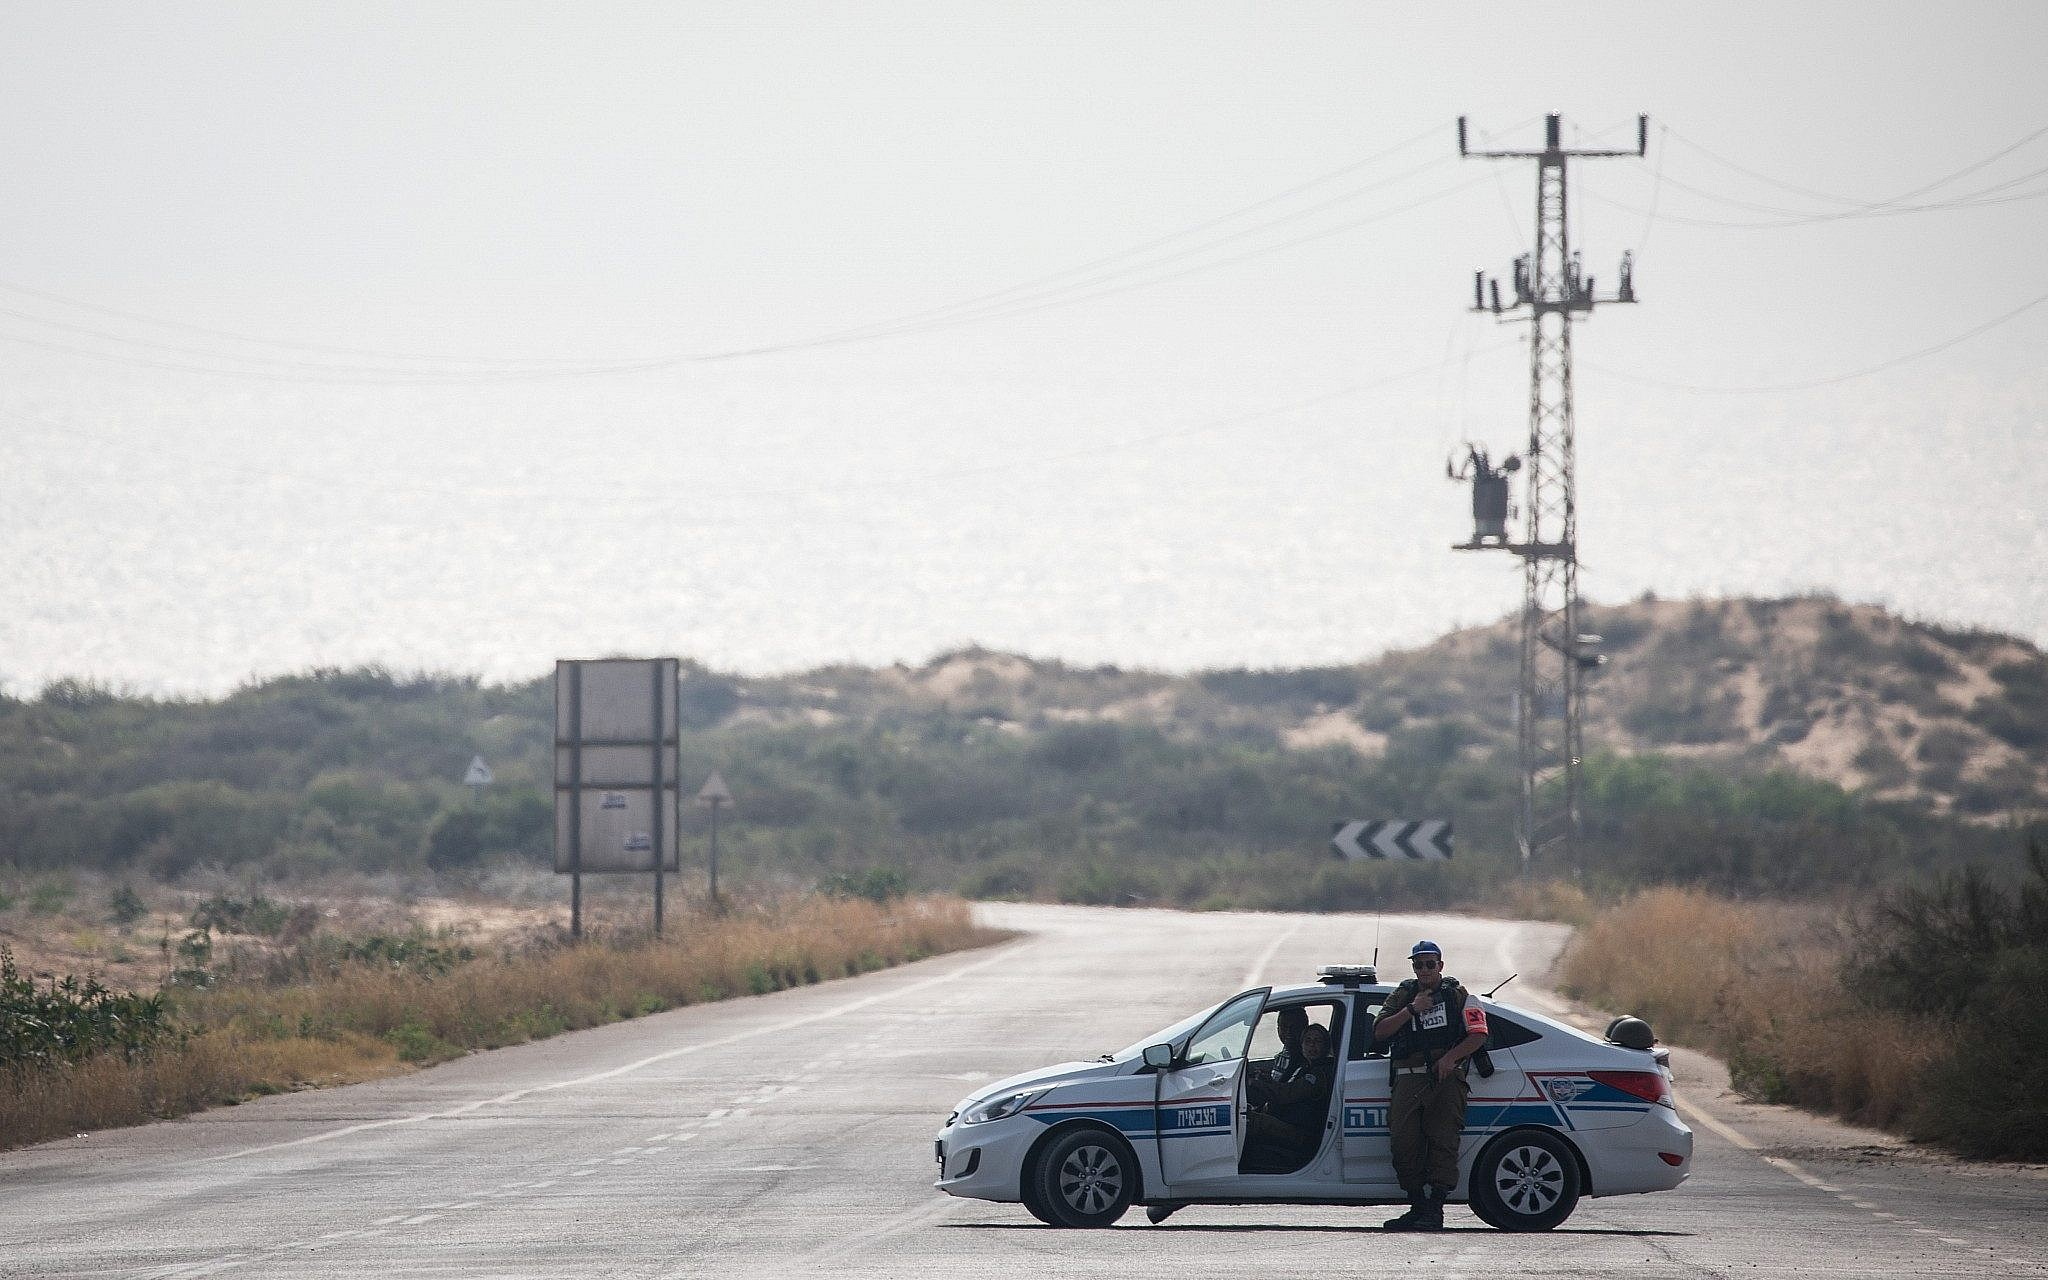 Israel responds to Gaza rockets by killing three, including Hamas terrorist